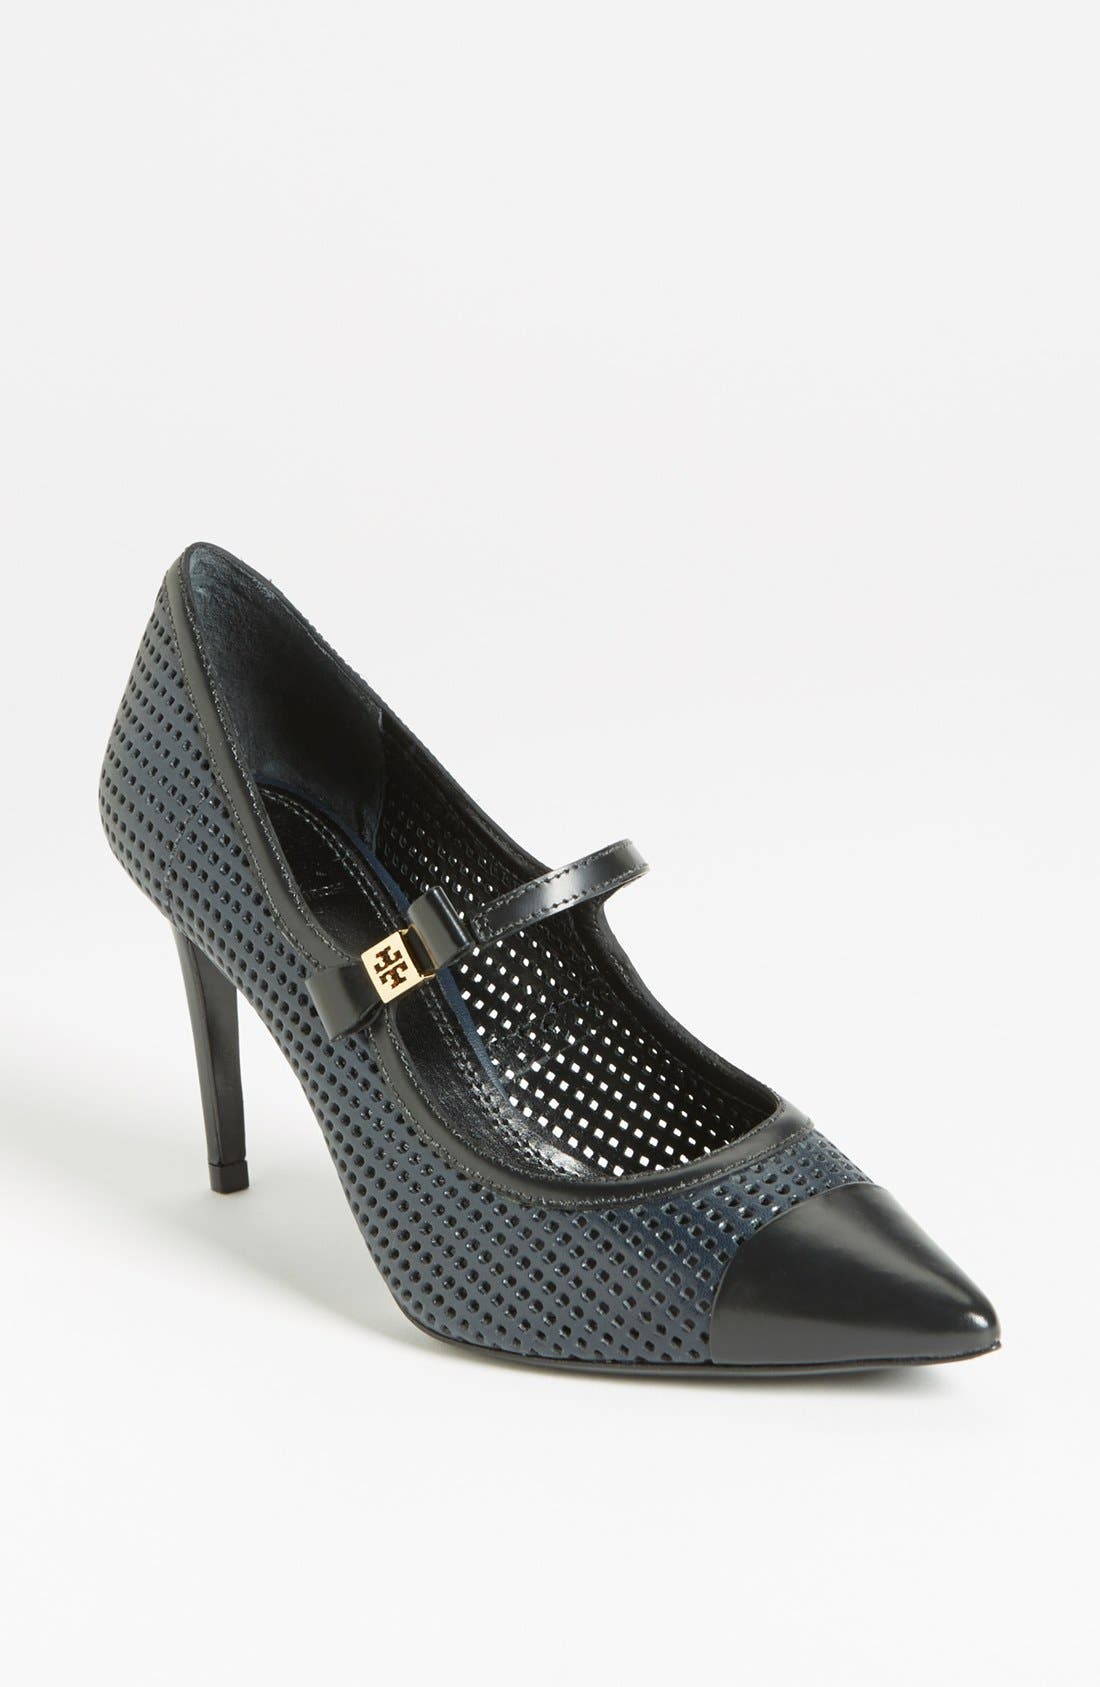 Alternate Image 1 Selected - Tory Burch 'Larissa' Pump